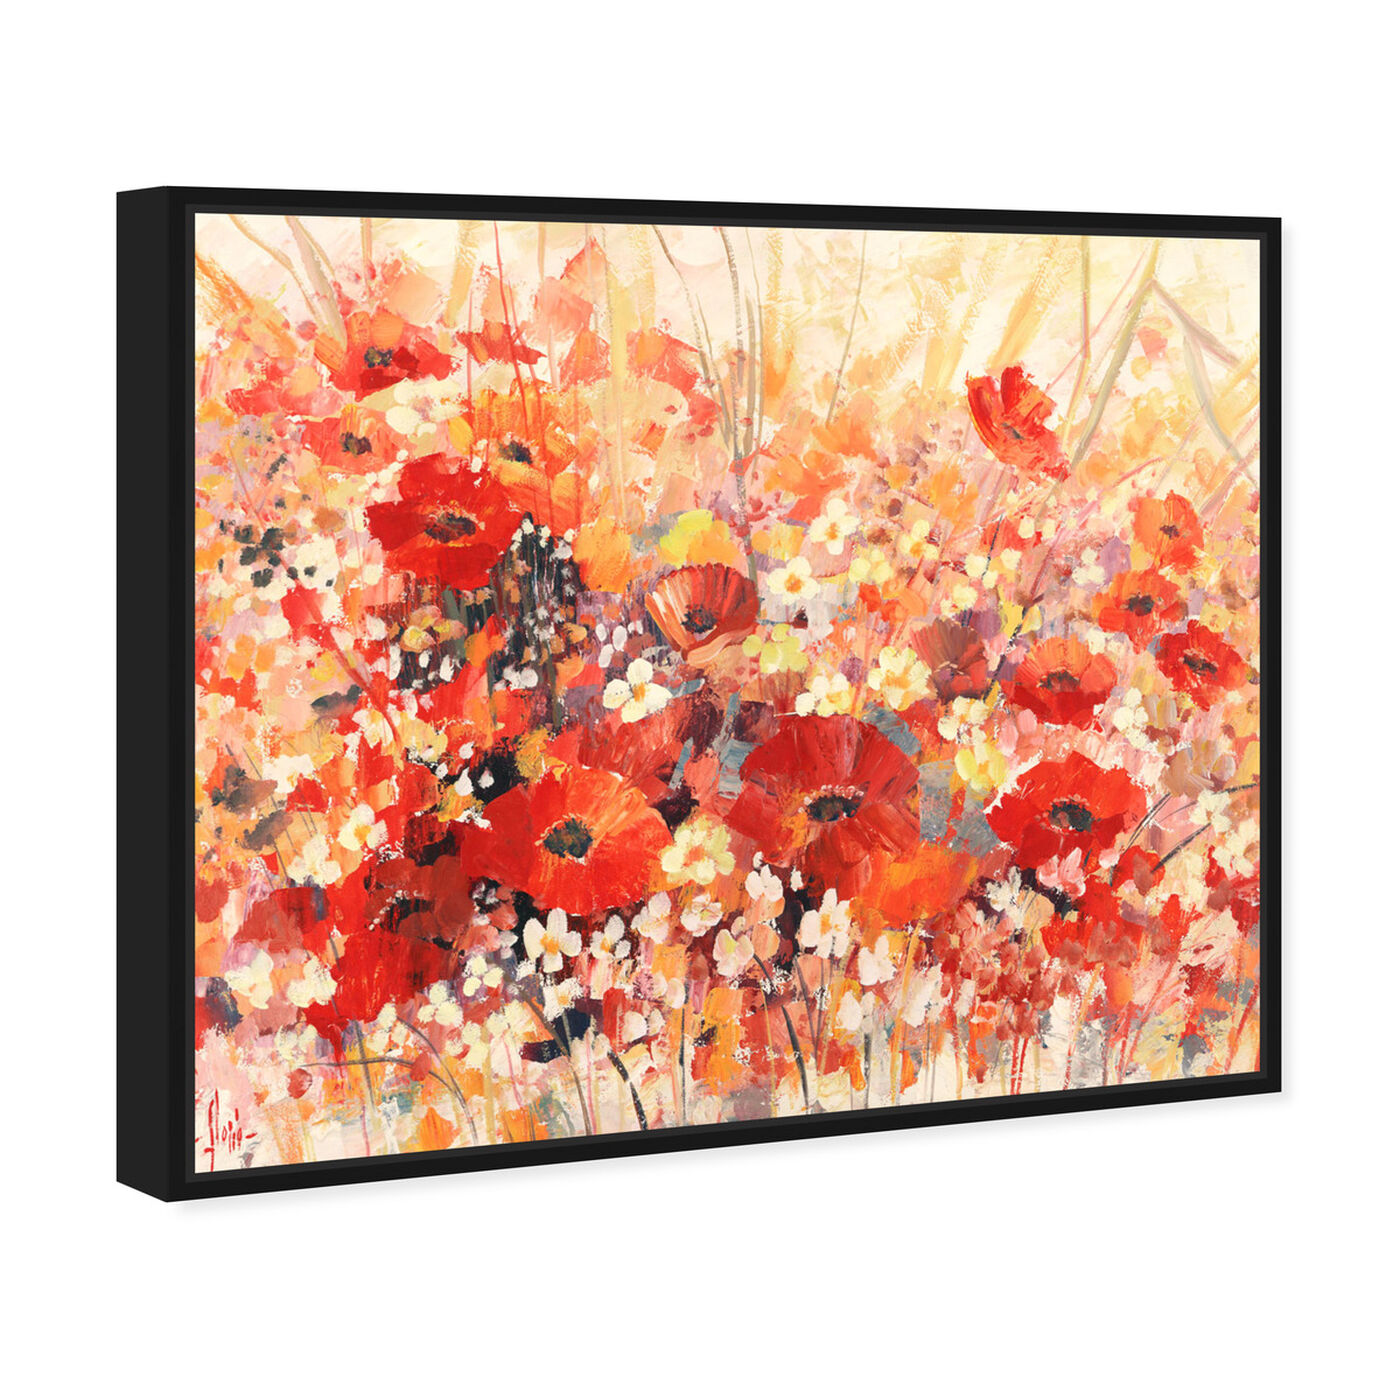 Angled view of Sai - Red Floral 3LR1777 featuring floral and botanical and gardens art.